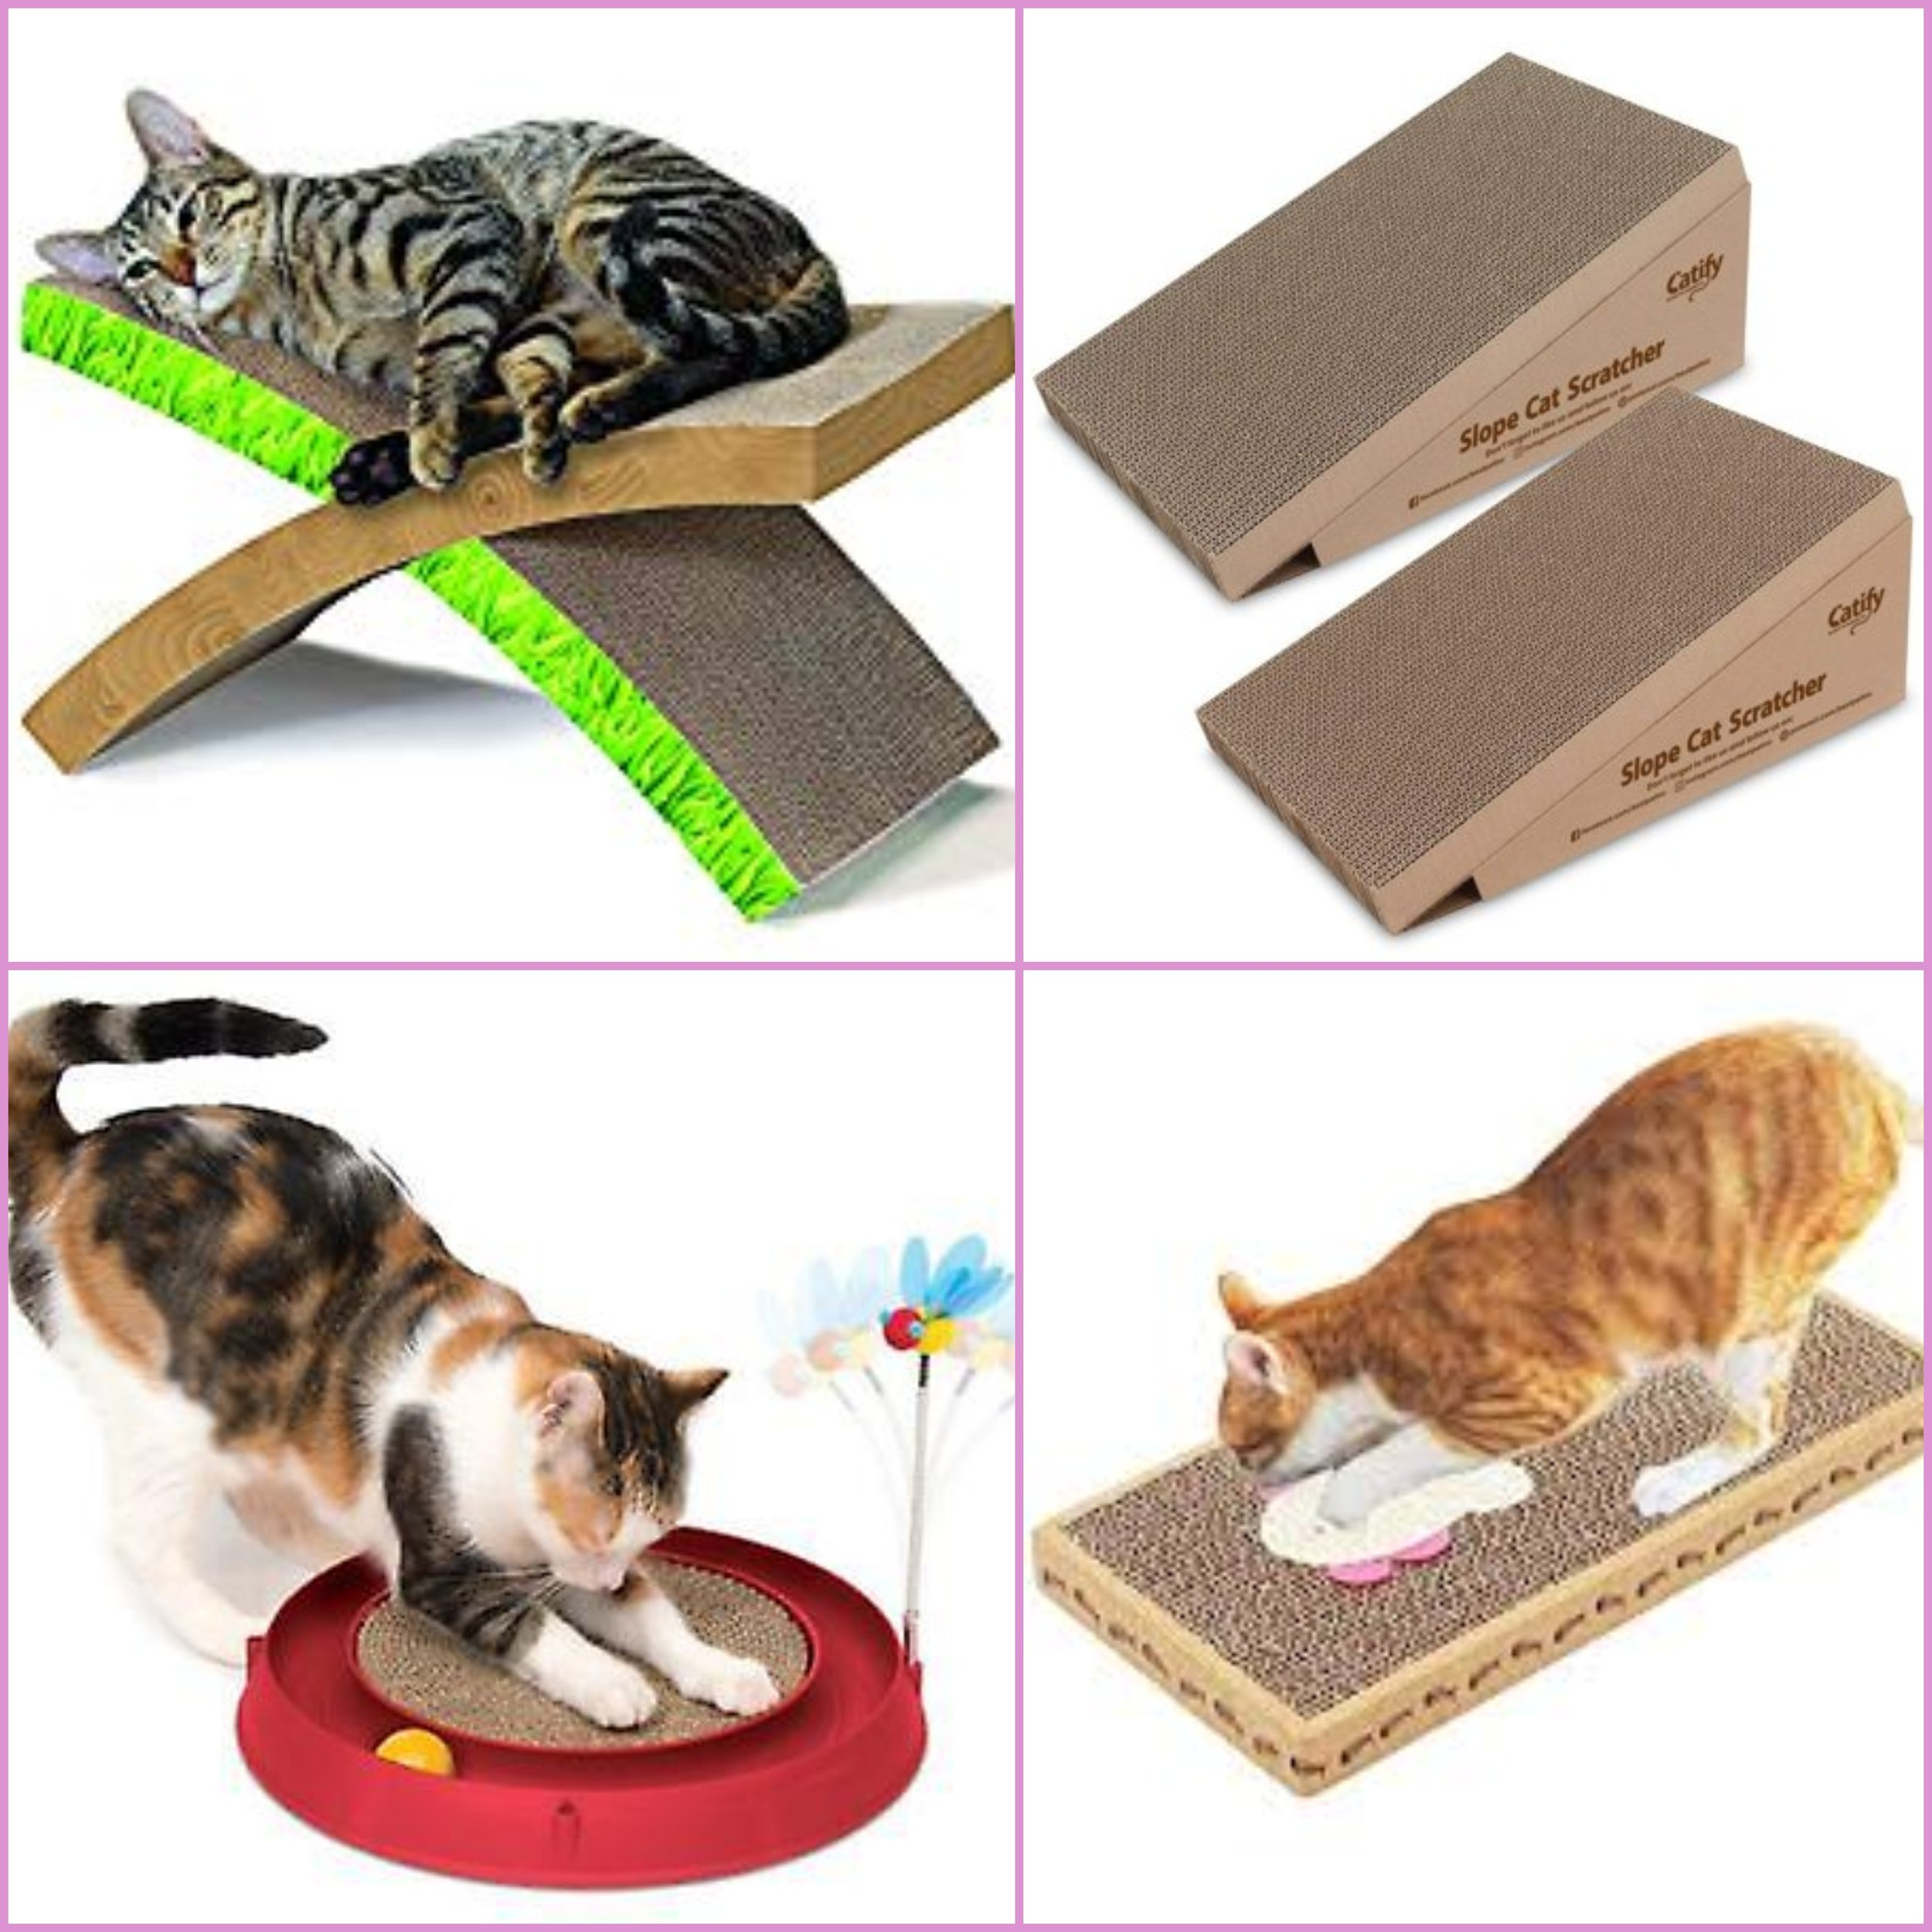 Different types of card board scratchers.